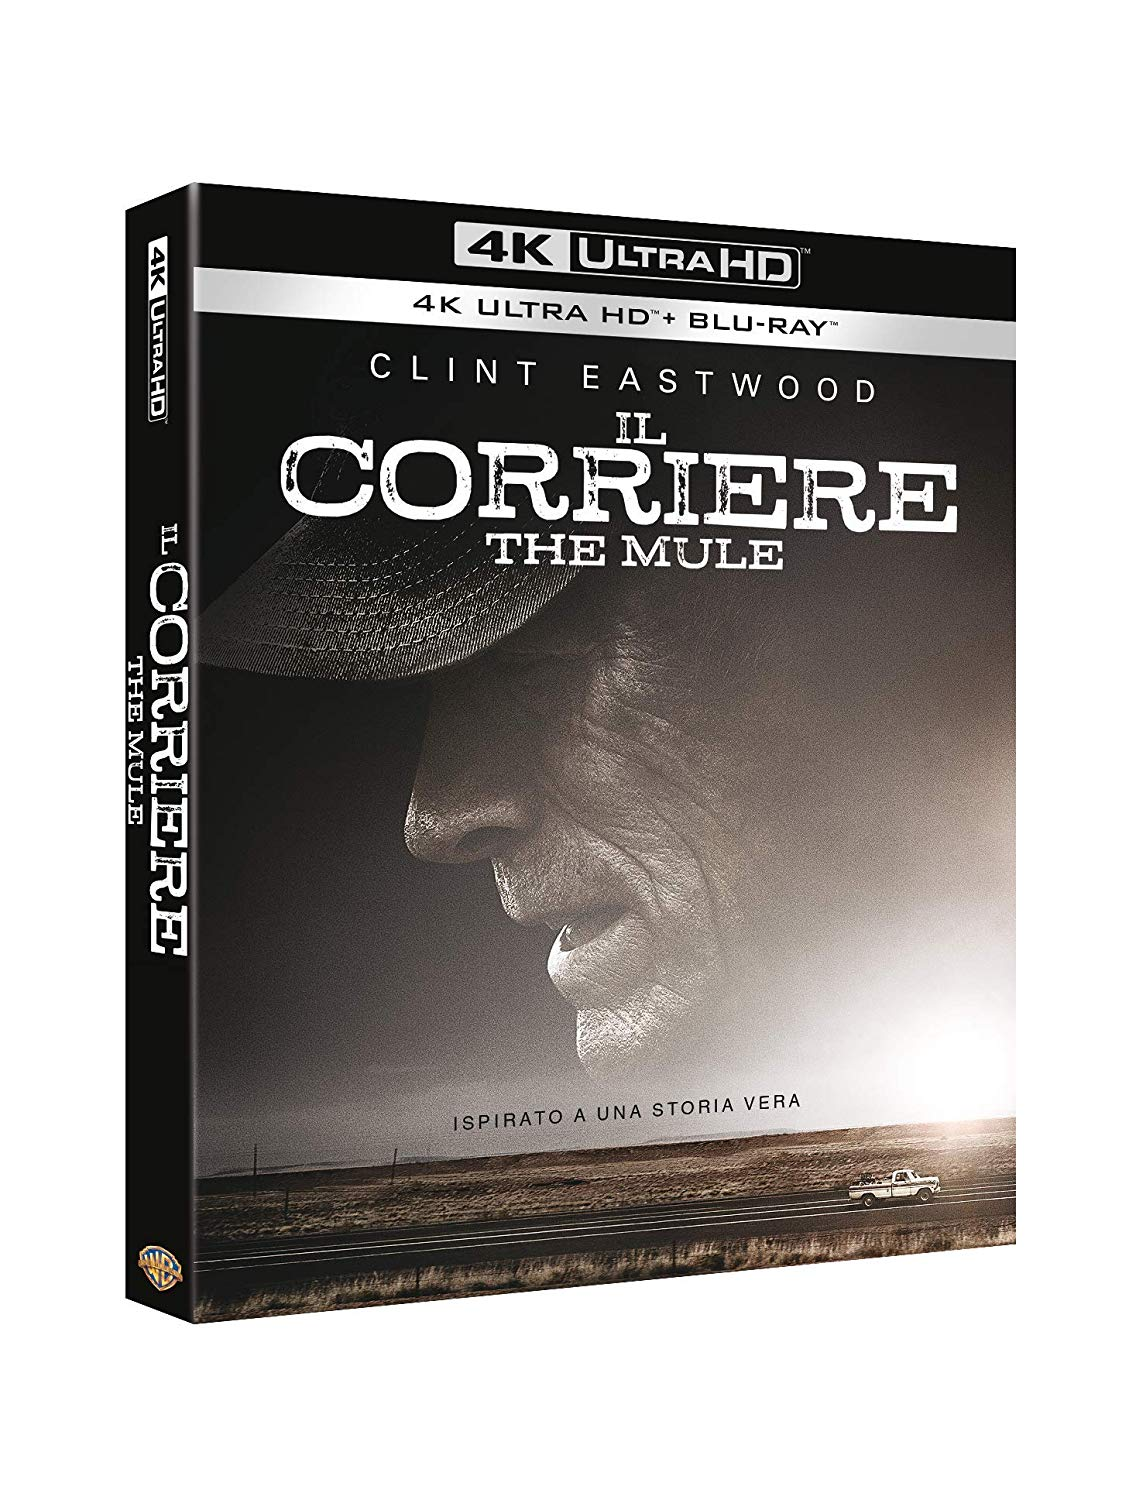 IL CORRIERE - THE MULE (4K ULTRA HD +BLU-RAY)